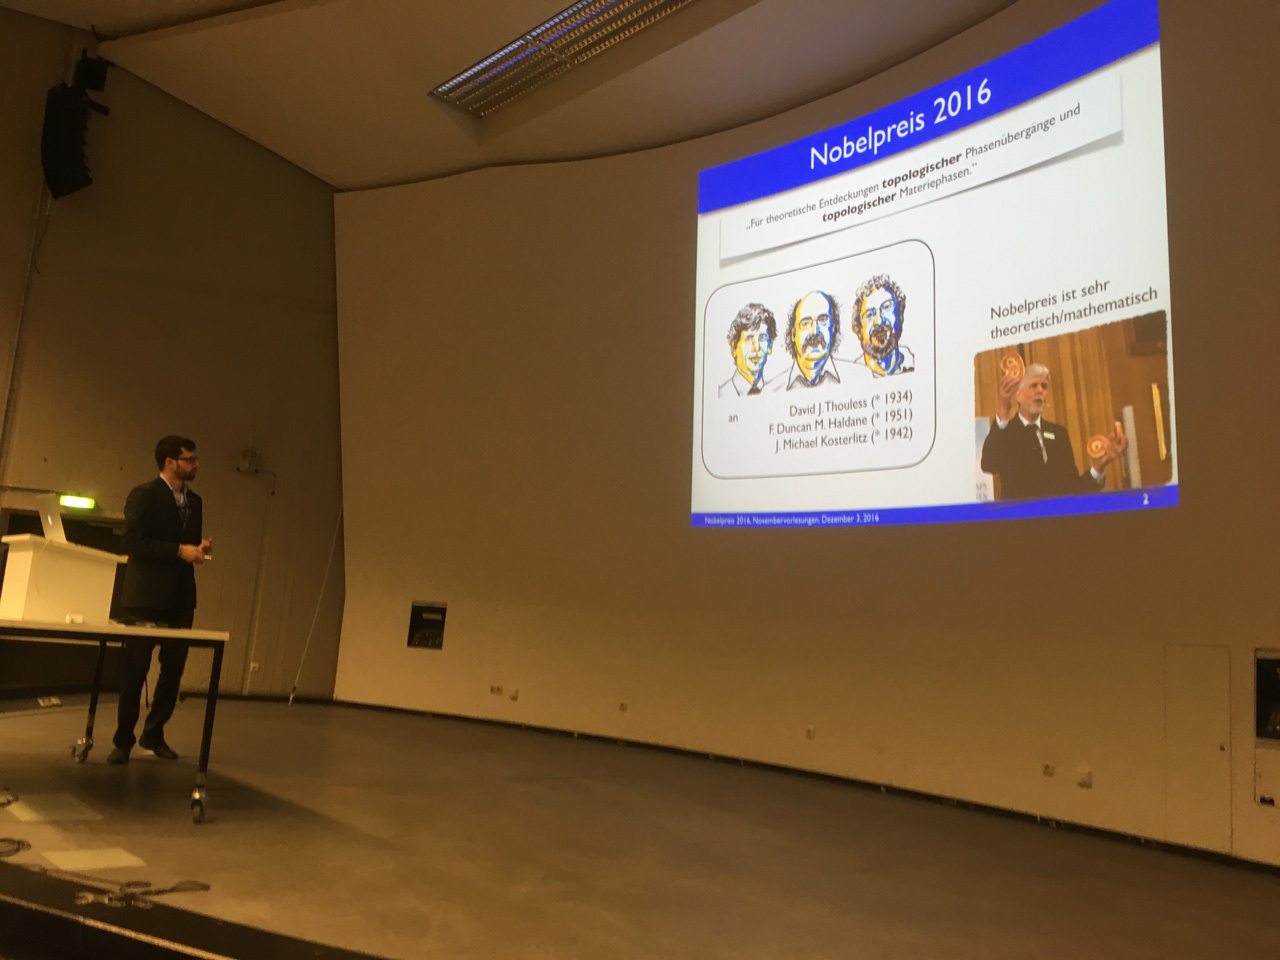 RWTH Explains the Nobel Prize Decisions